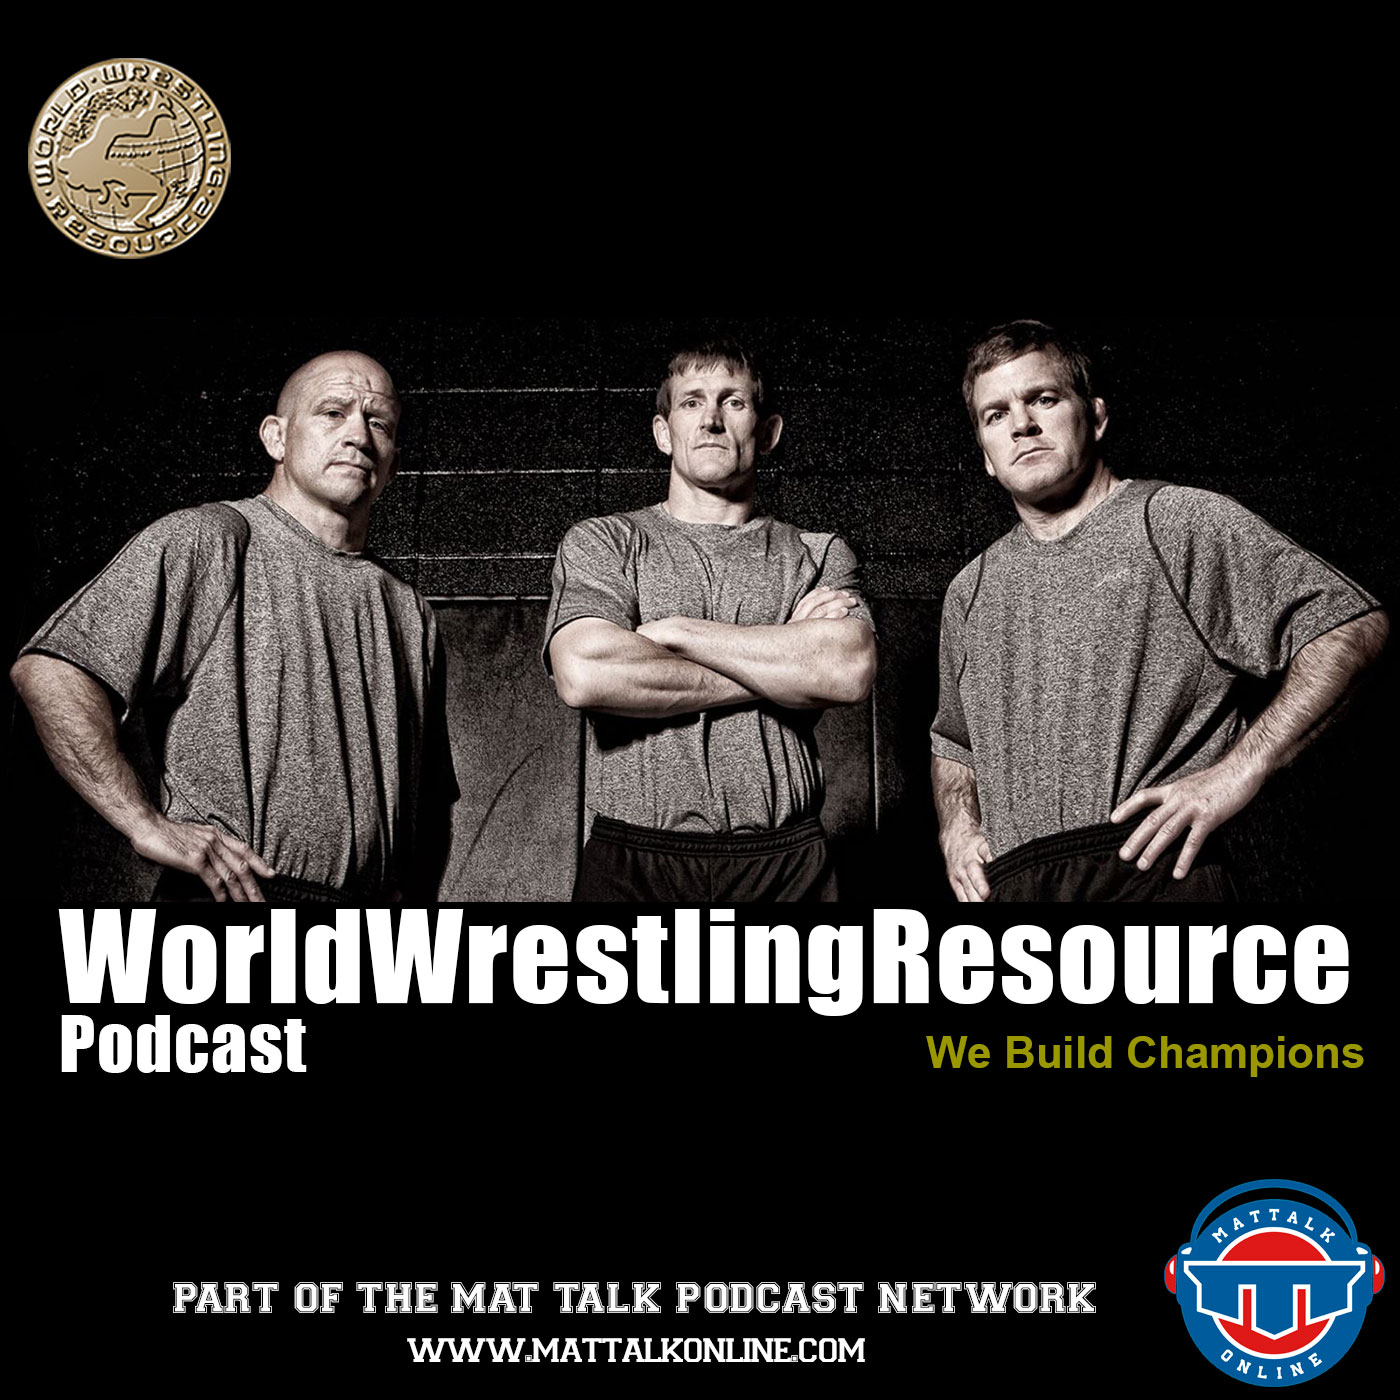 Artwork for WWR14: Greco-Roman specialists Dennis Hall and Ivan Ivanov discuss the rule changes